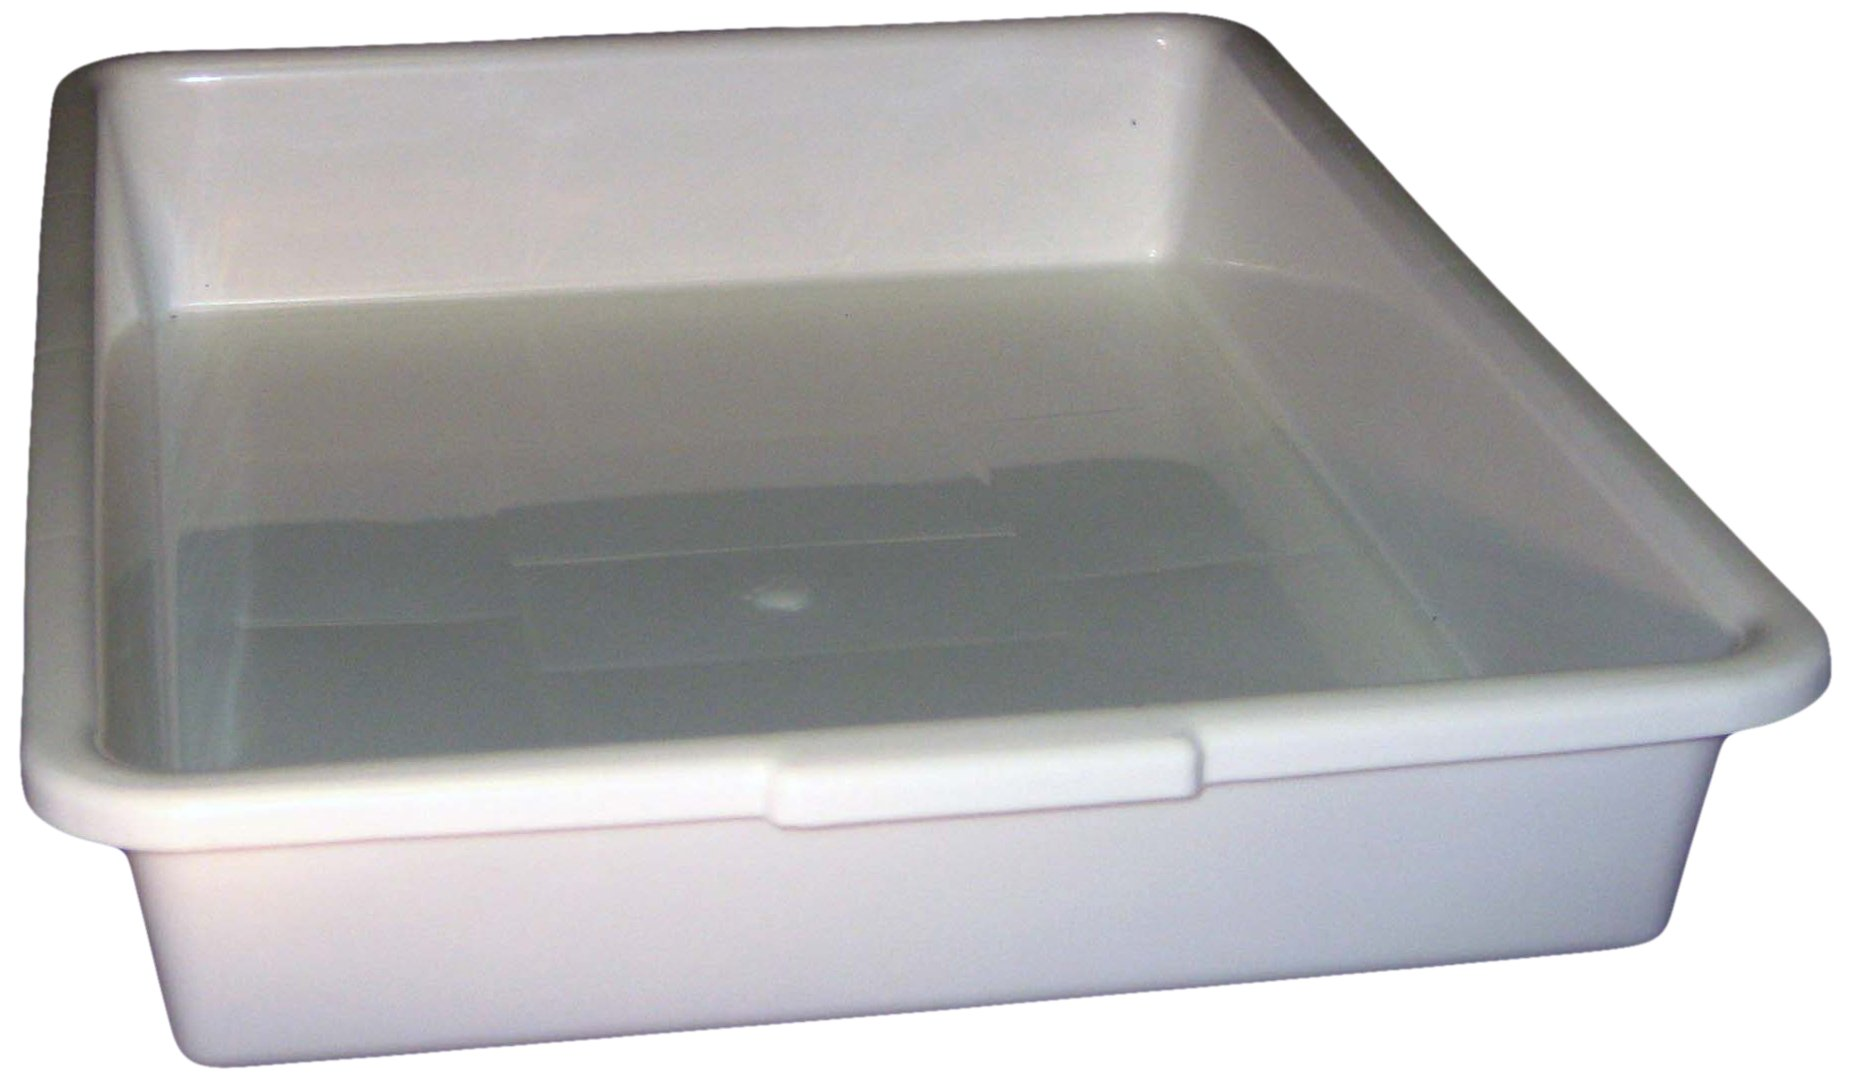 PSC 1007176 General Purpose Tray, Autoclavable, Polypropylene, 18'' x 14'' x 3'', White by PSC